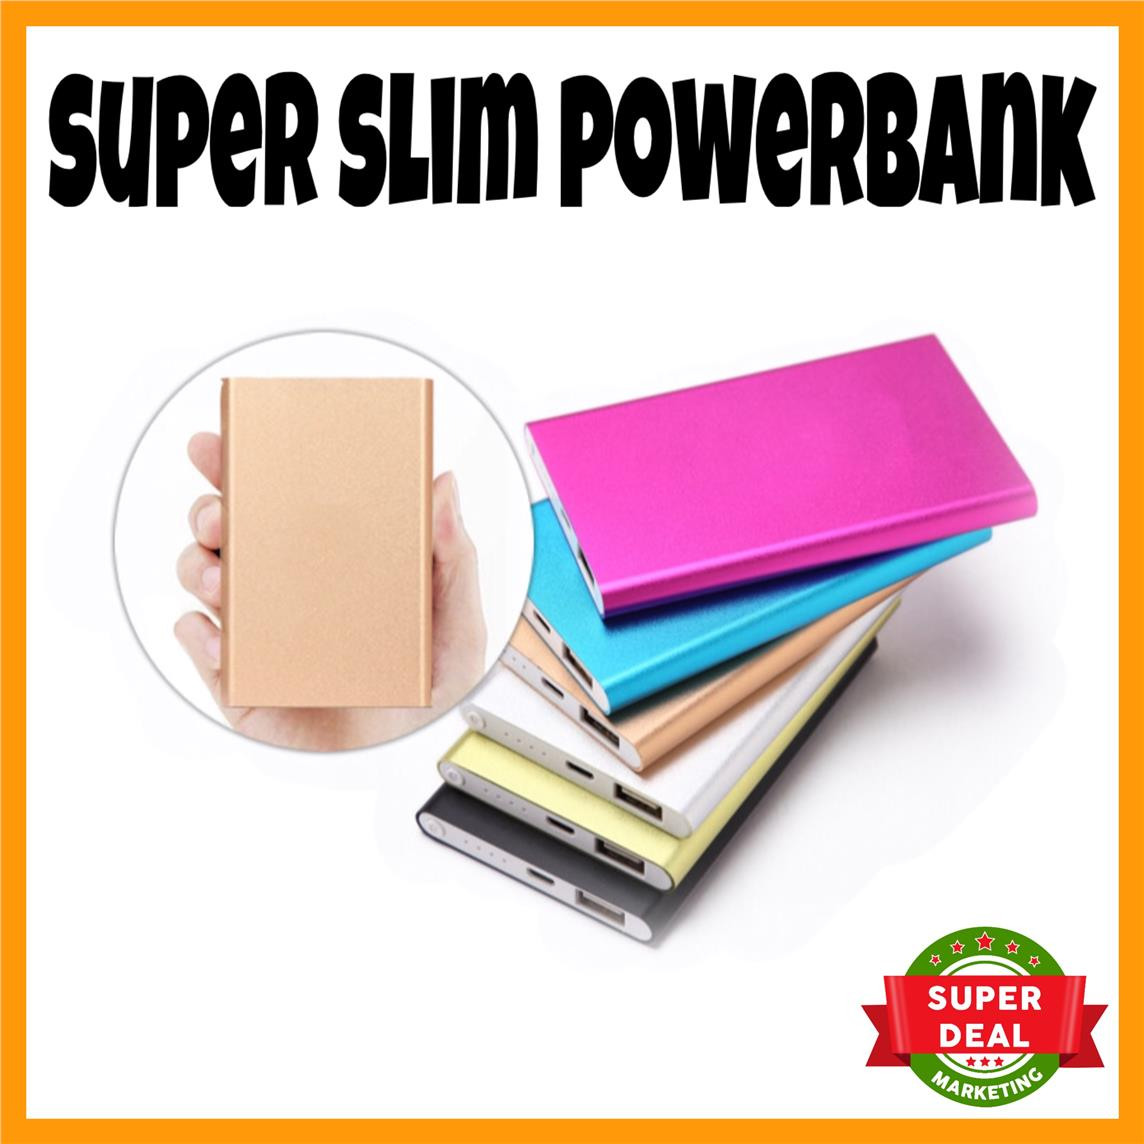 Super Slim Power Bank 12000mah with FREE GIFT